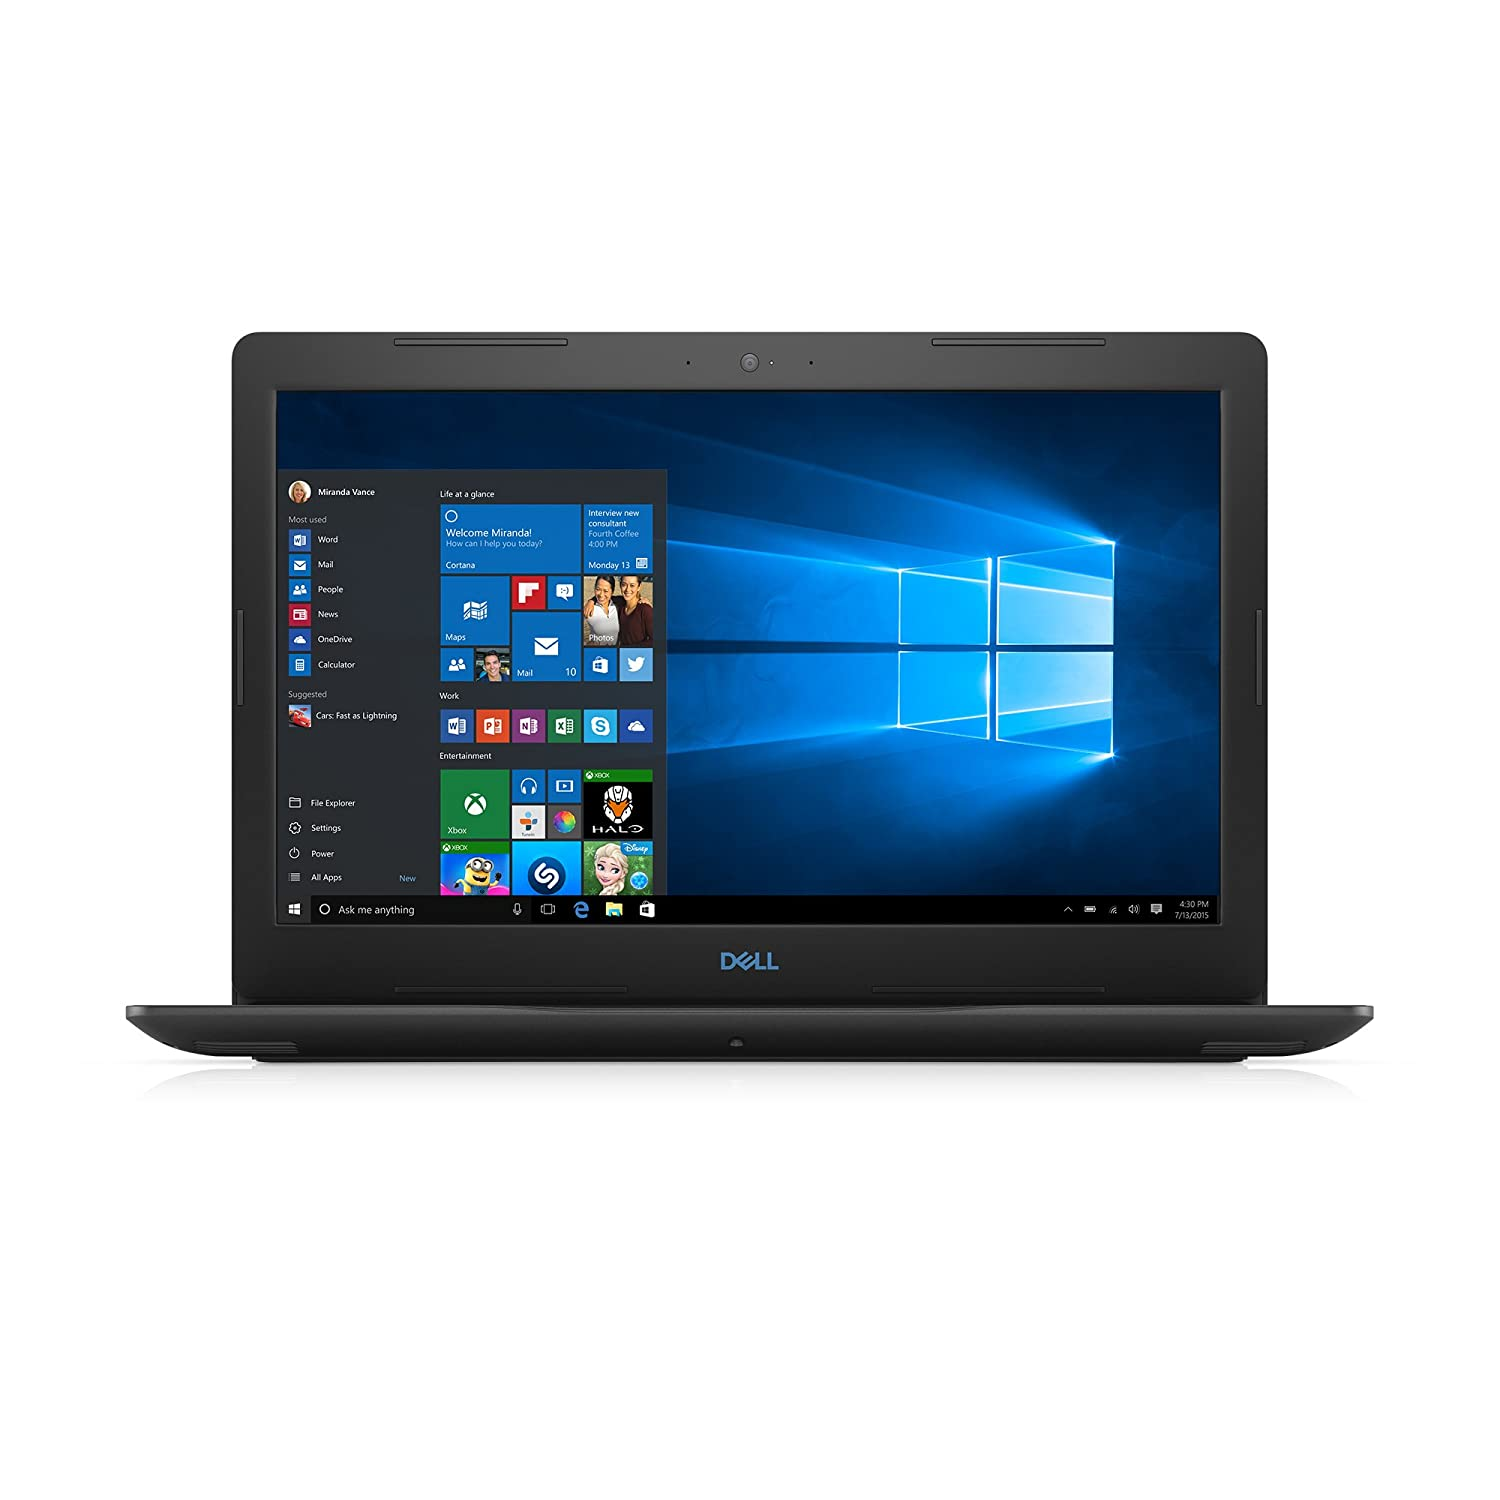 Dell G3 Gaming Laptop - 15 6